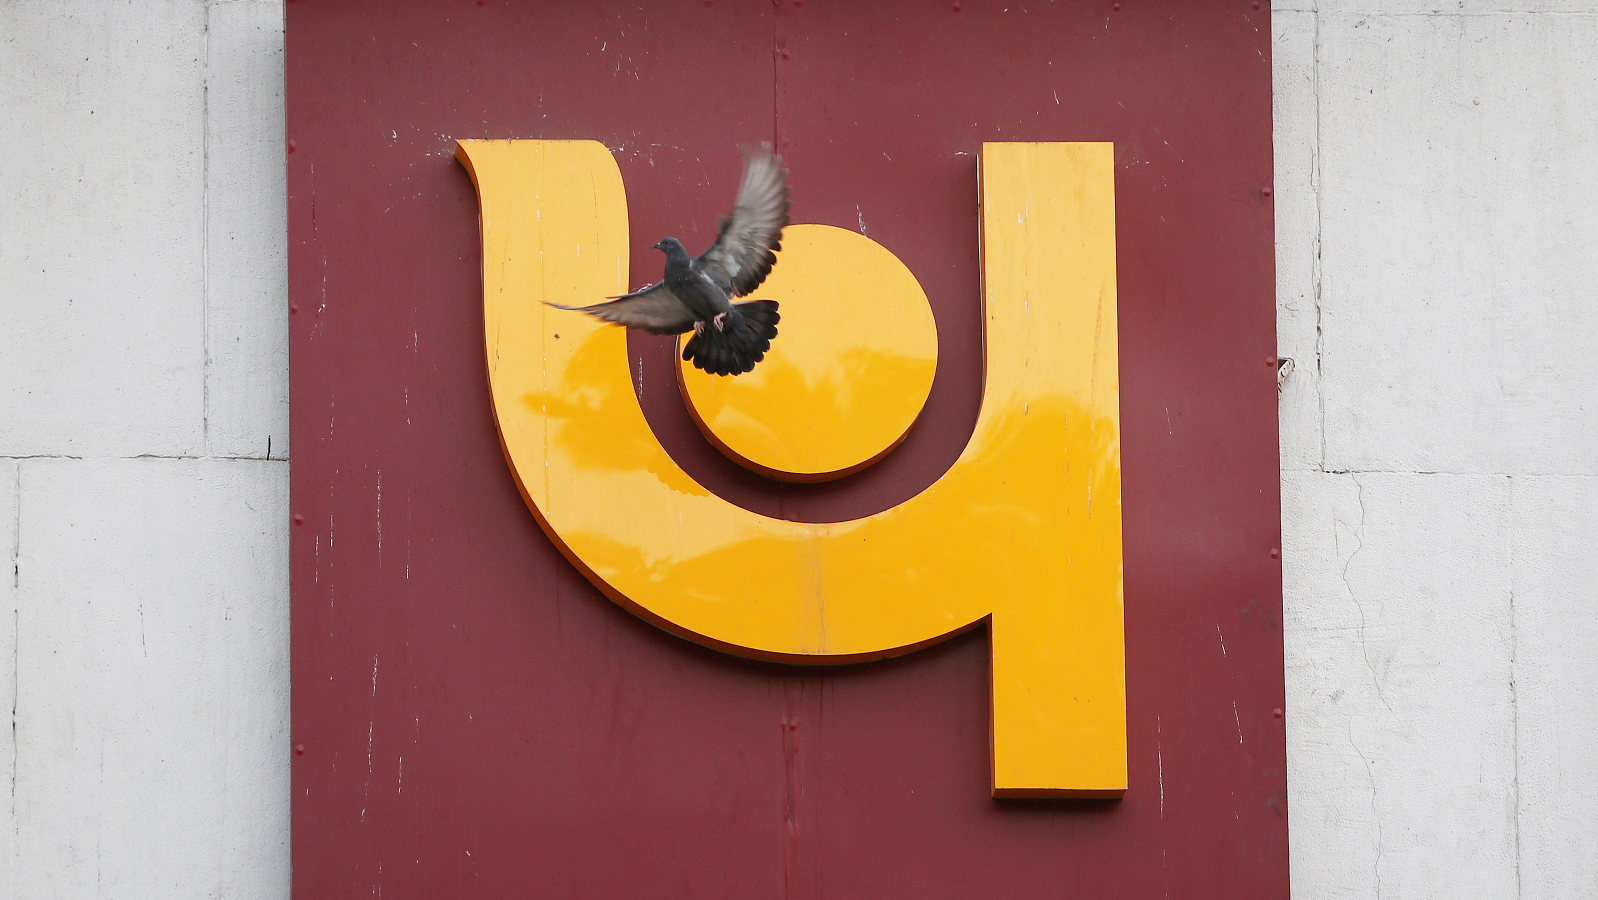 A pigeon flies past the logo of Punjab National Bank outside a branch of the bank in New Delhi, India February 15, 2018.